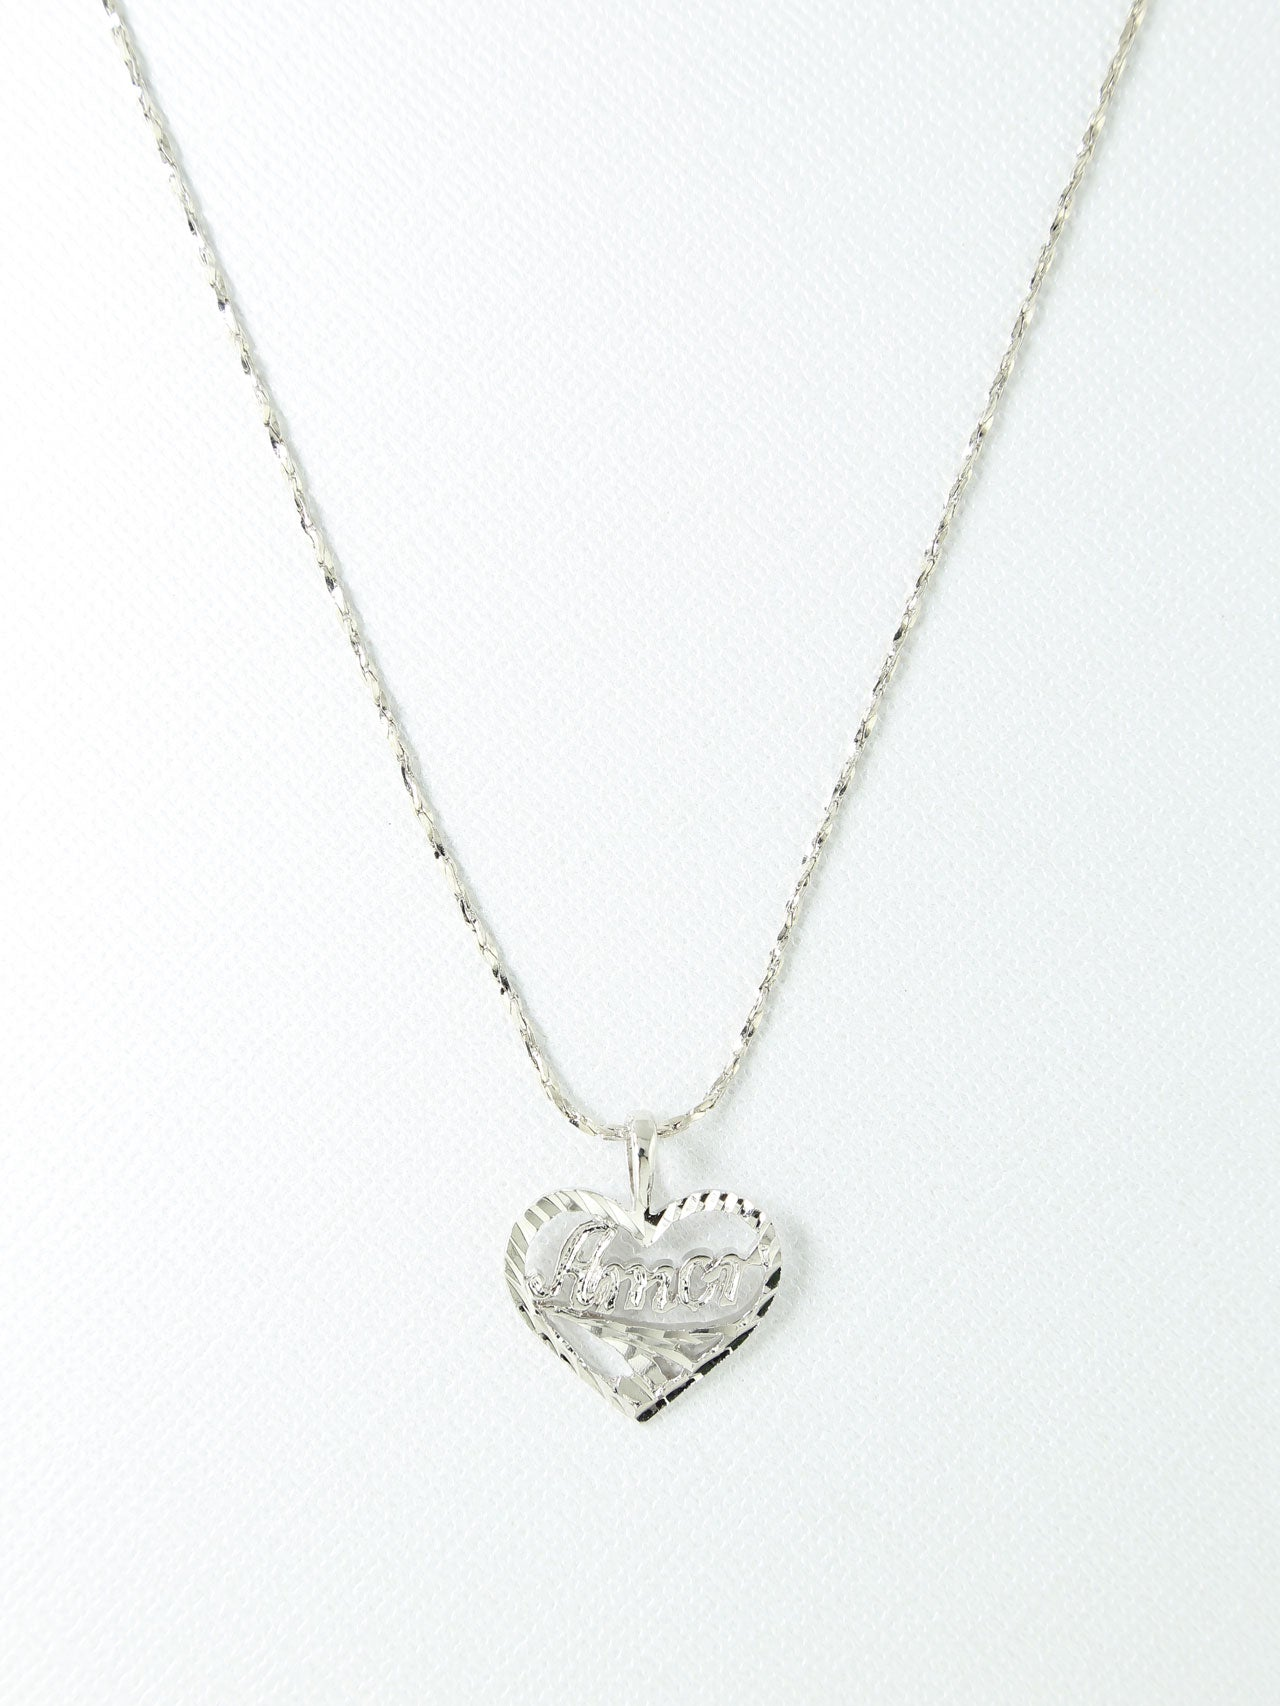 The Amor Necklace – Silver